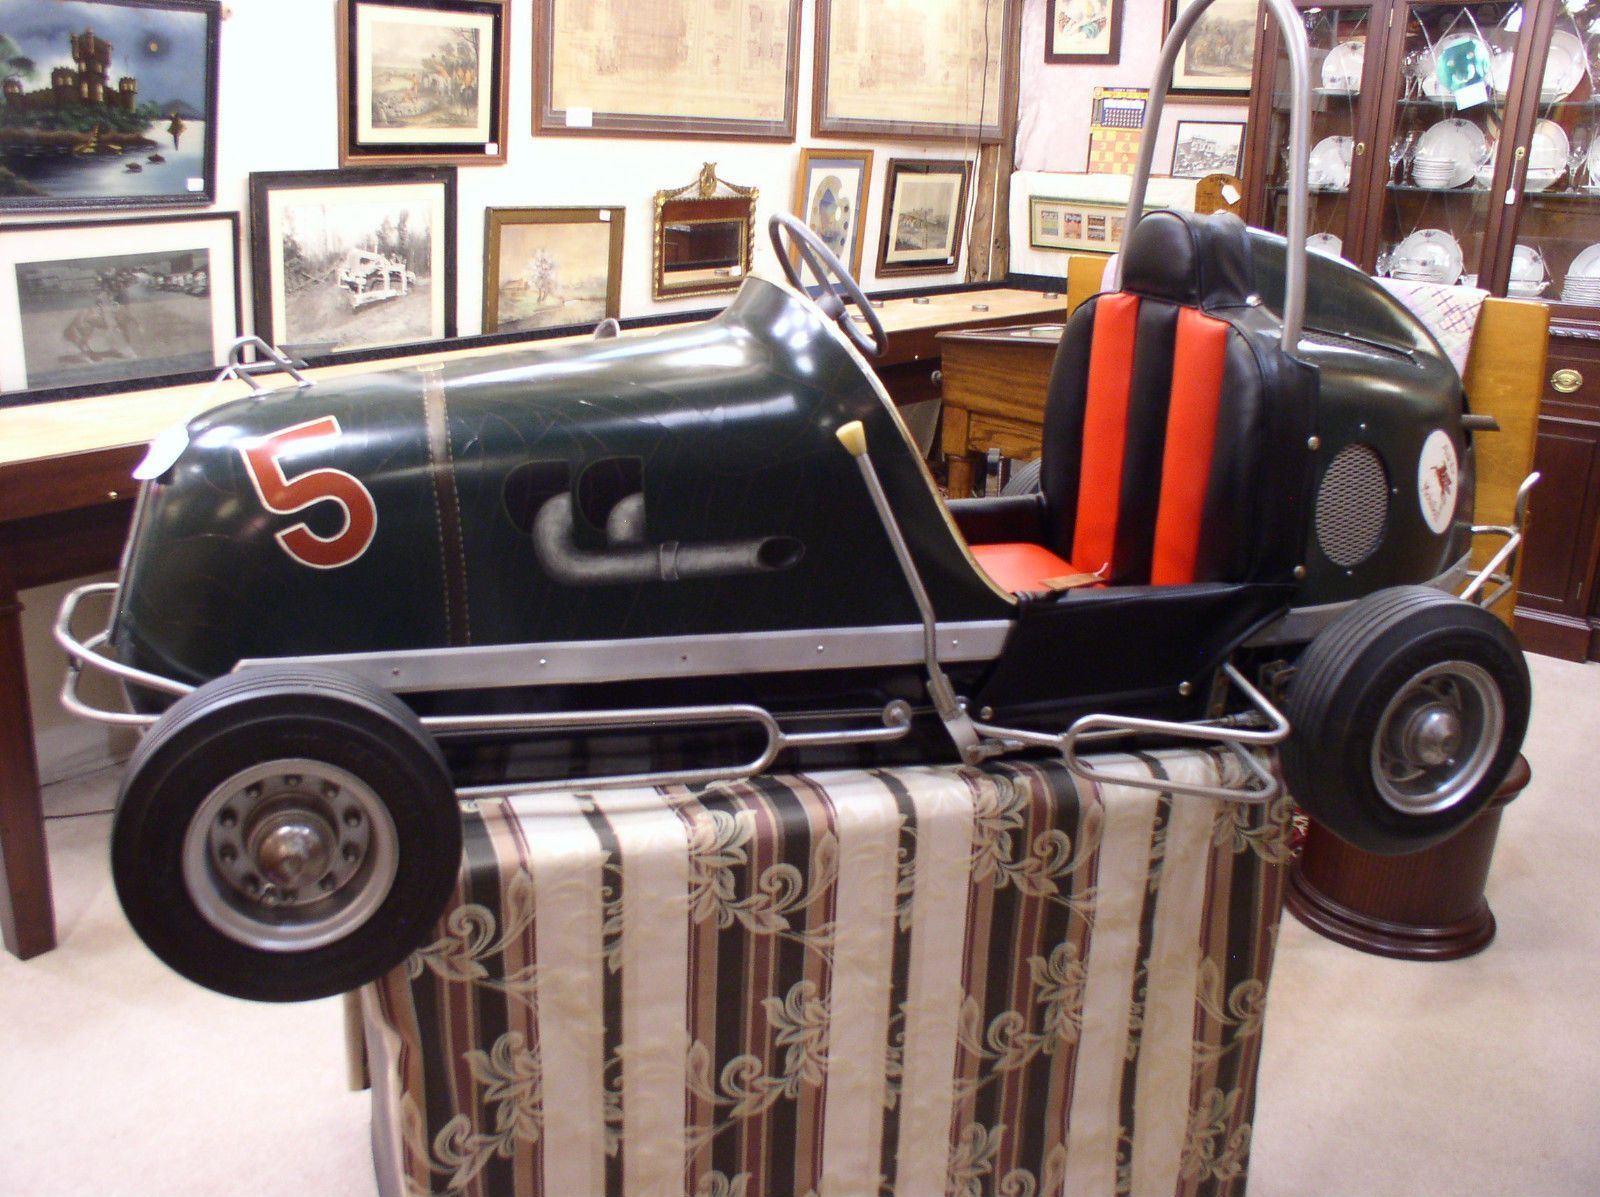 Shoe S. reccomend 1959 continental quarter midget race car